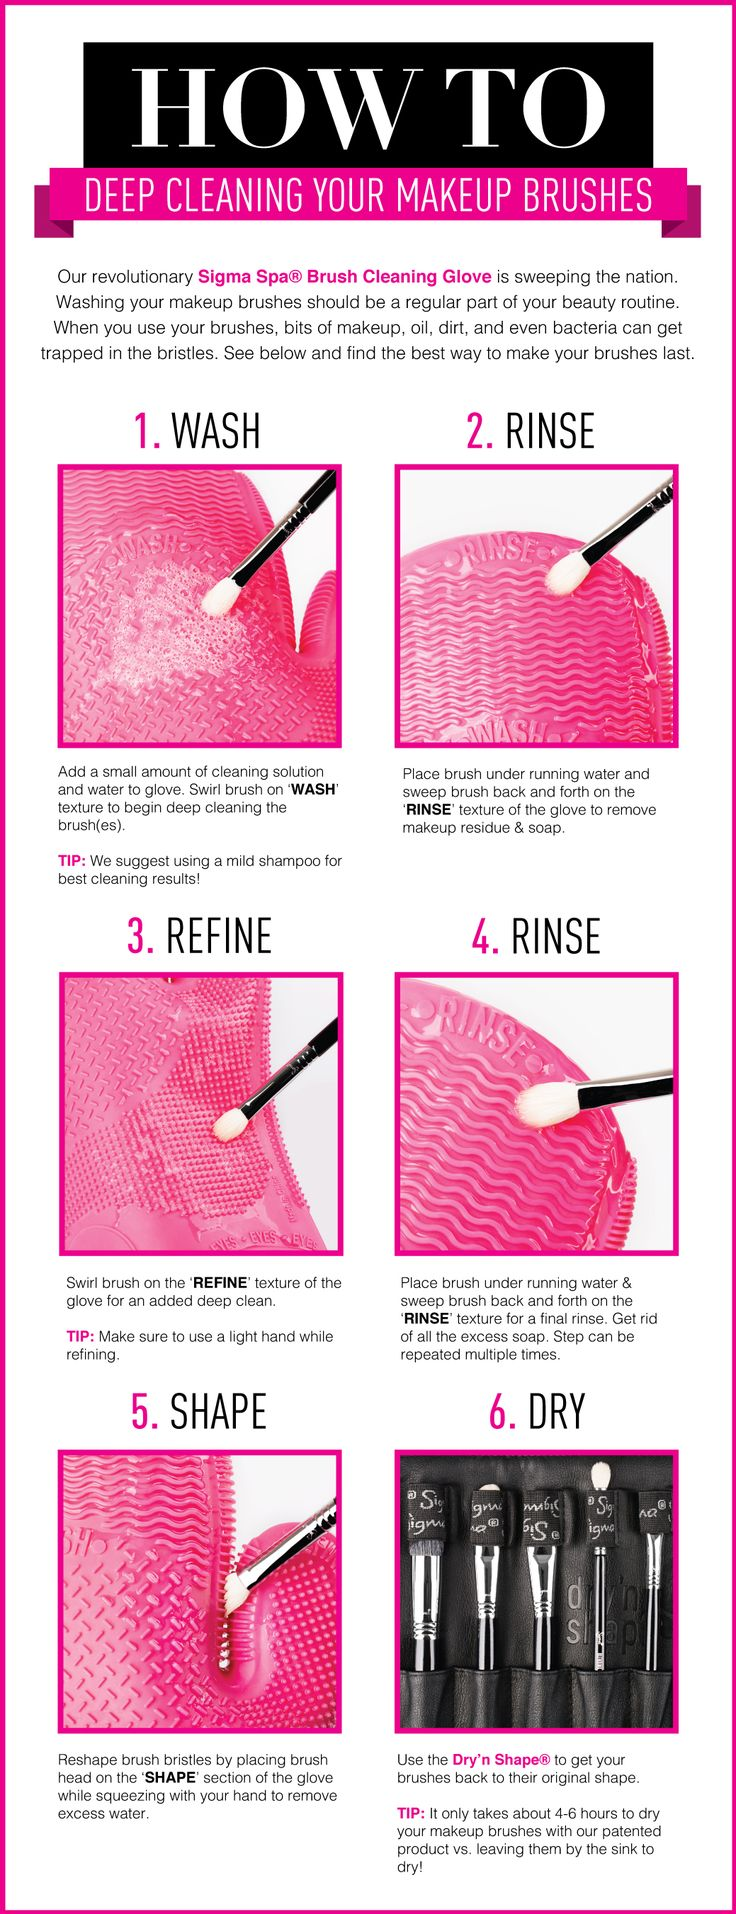 Learn how to clean your makeup brushes in 6 EASY steps with our well known Spa Brush Cleaning Glove! Where to buy Real Techniques brushes -$10 http://samanjoin.wordpress.com/2014/01/07/real-techniques-brushes-samantha-chapman/ #cleanmakeupbrushes #makeupbrushescleaning #makeup #makeupbrushes